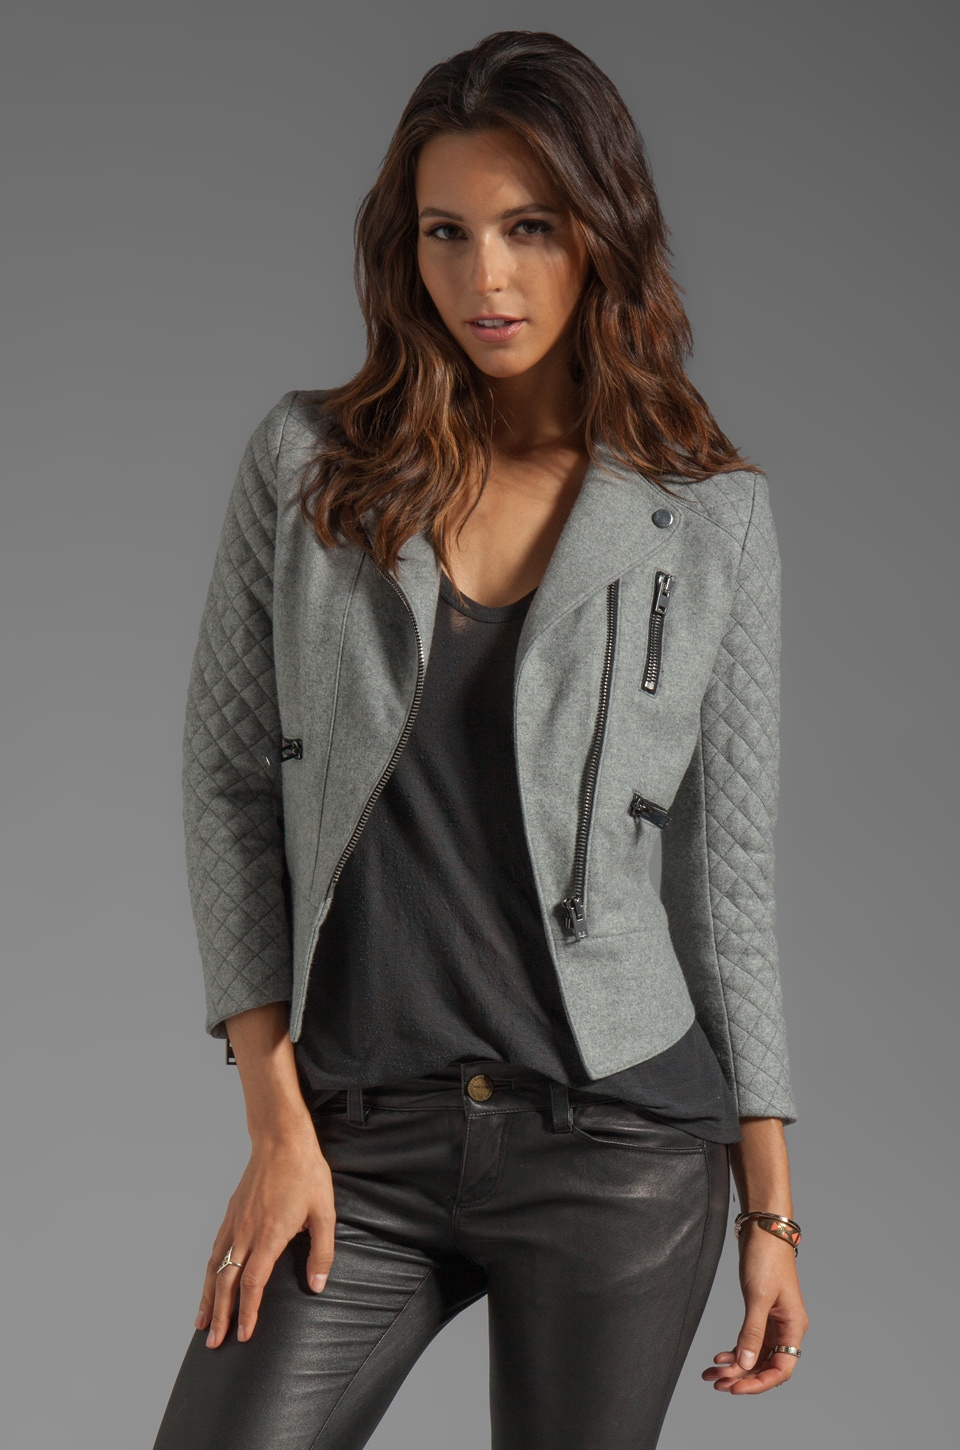 MAX FOWLES Lady Jacket in Grey